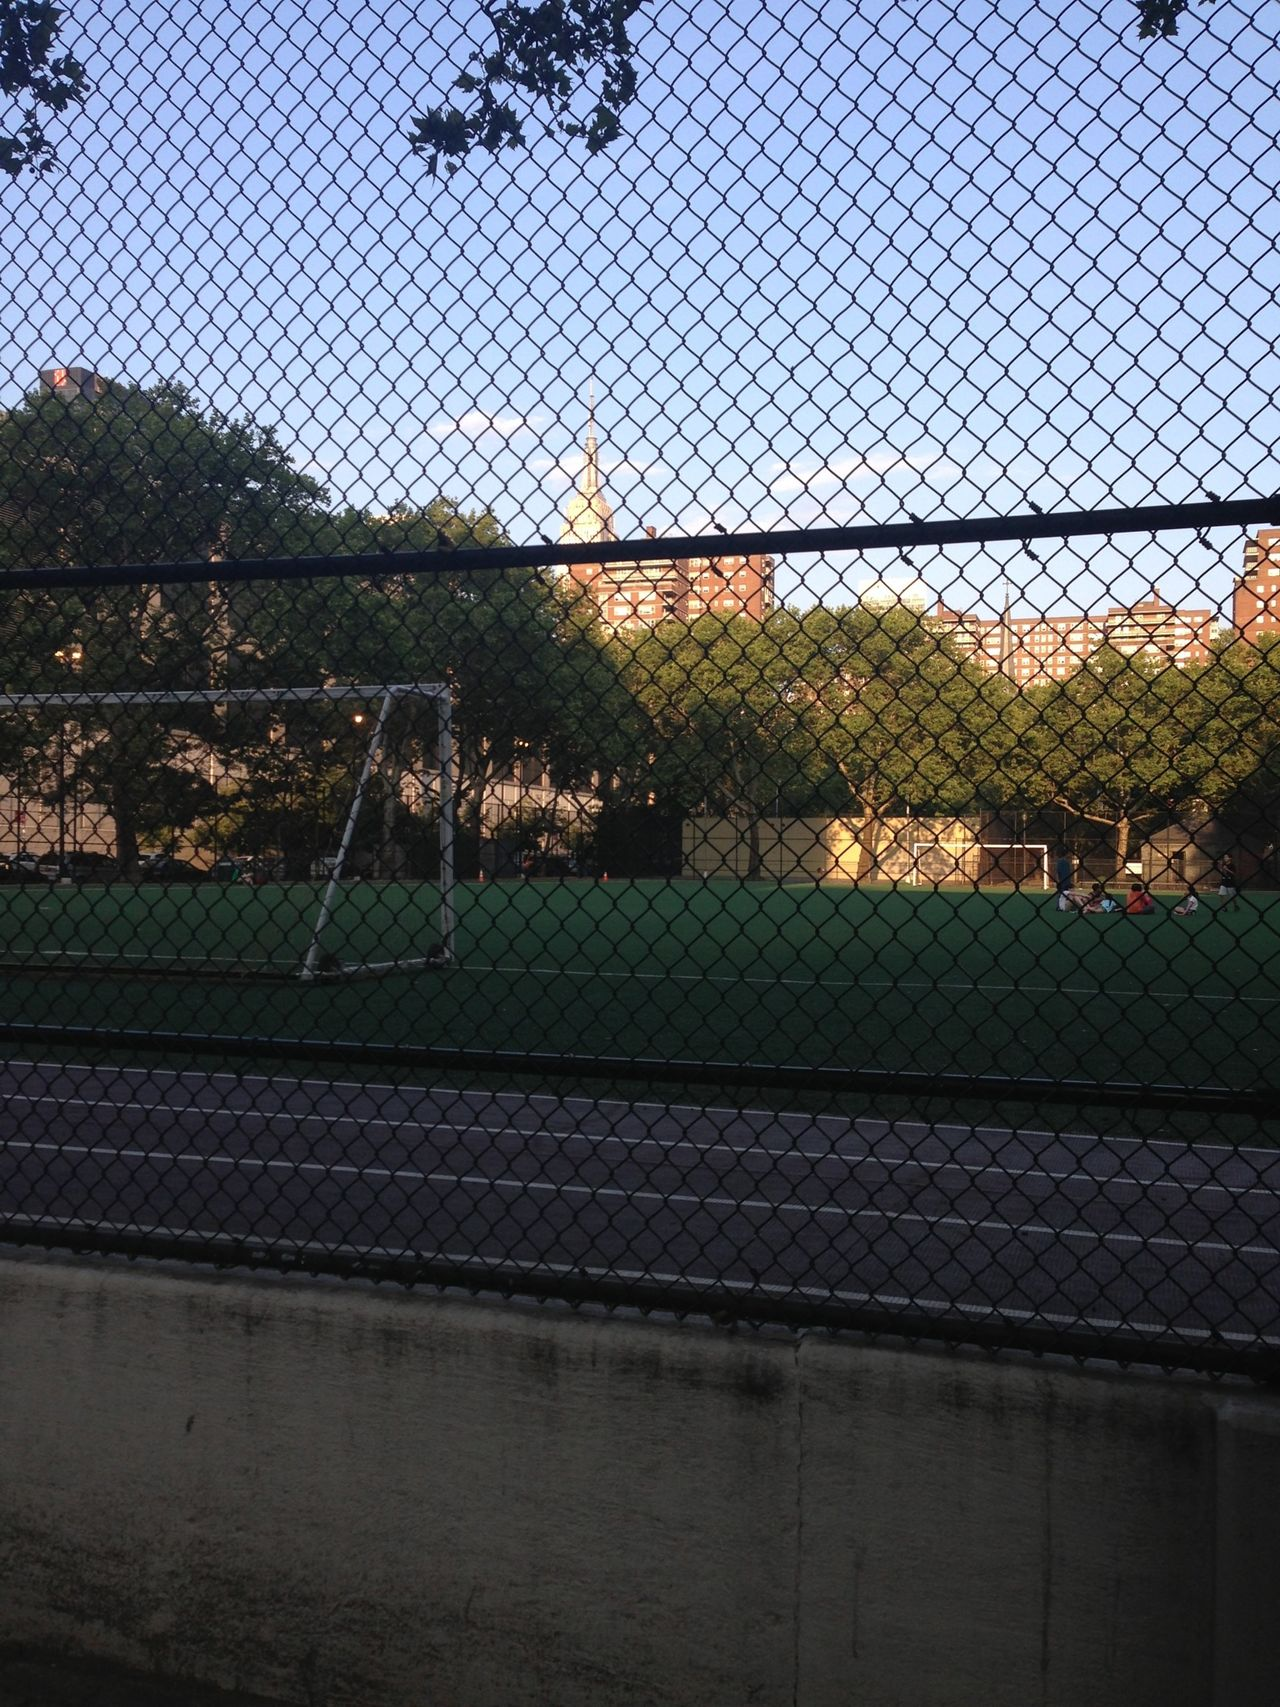 We Are Onefootball Soccer Field Pitch Playground NYC Summertime New York New York City Fence Playing